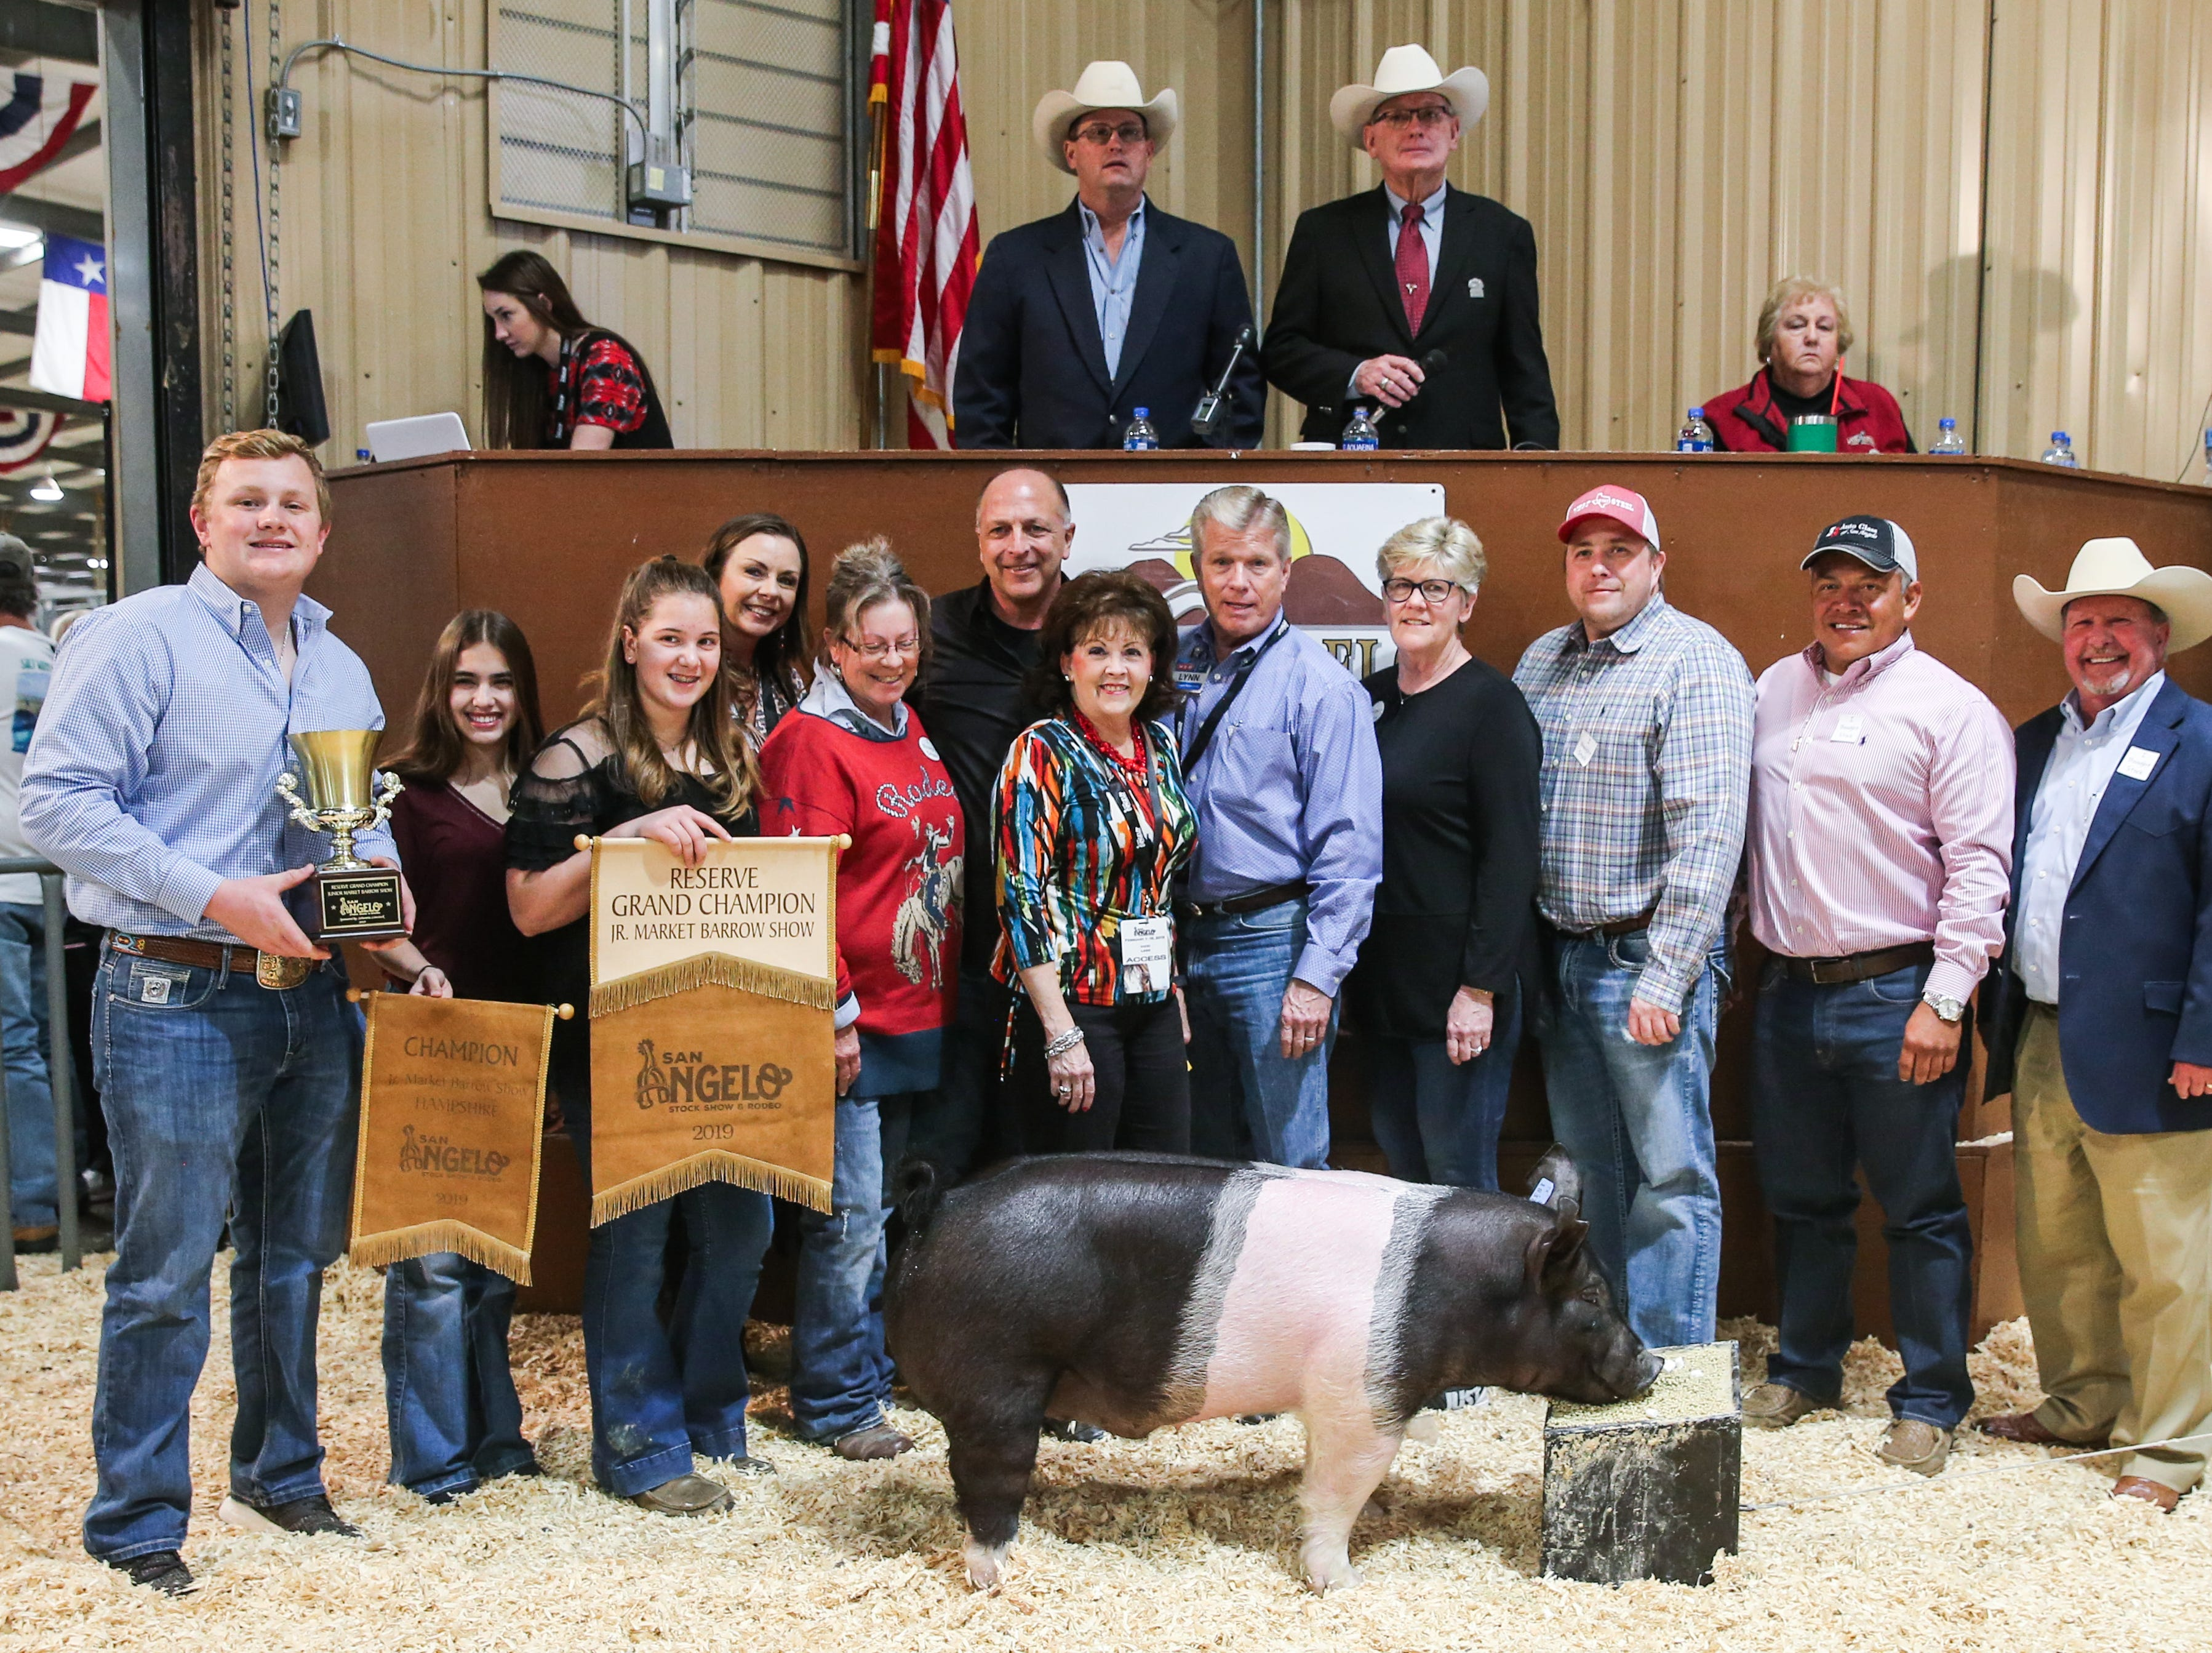 Reserve Grand Champion Barrow exhibited by Dakota Martin of Mason County 4-H, sold for $12,000.From left to right: Slone Stultz (holding trophy); Kary Humphrey (holding banner); Dakota Martin (exhibitor); Bridget Carr, Carr Clinic; Dawn Foster, No Step Ranch; Phil Gandy, Gandy Ink; Vicki Loso, 1st Community Credit Union; Lynn Shipley, H-E-B; Pattie Self, Automatic Fire Protection; Bubba Davis, West Texas Steel; Johnny Castillo, GA Auto Glass; Todd Price, Jim Bass Ford. Not pictured: Neff Livestock/Texas Water & Soil, W&W AFCO Steel- Hirschfeld Division, Sendero Drilling.